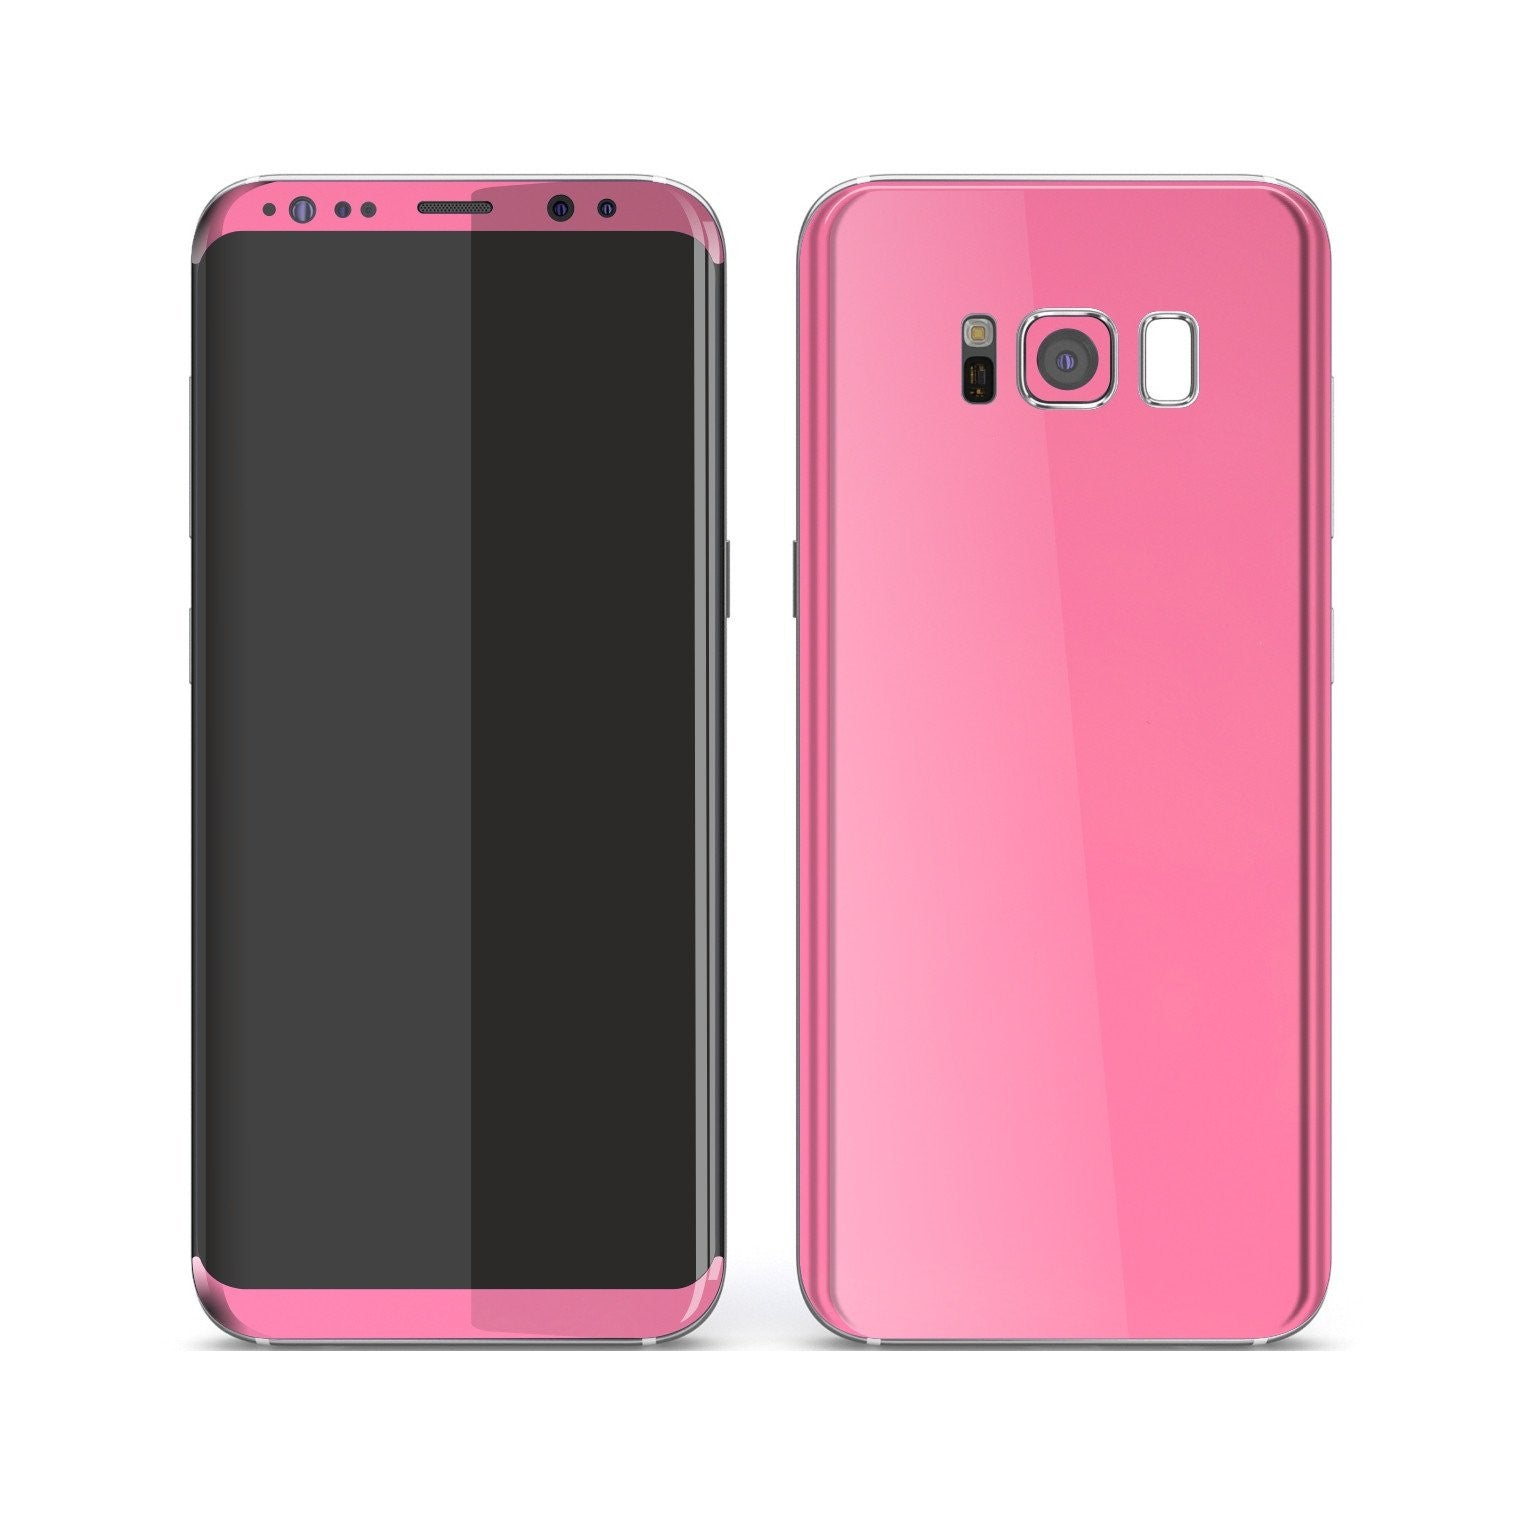 Samsung Galaxy S8+ Hot Pink Glossy Gloss Finish Skin, Decal, Wrap, Protector, Cover by EasySkinz | EasySkinz.com